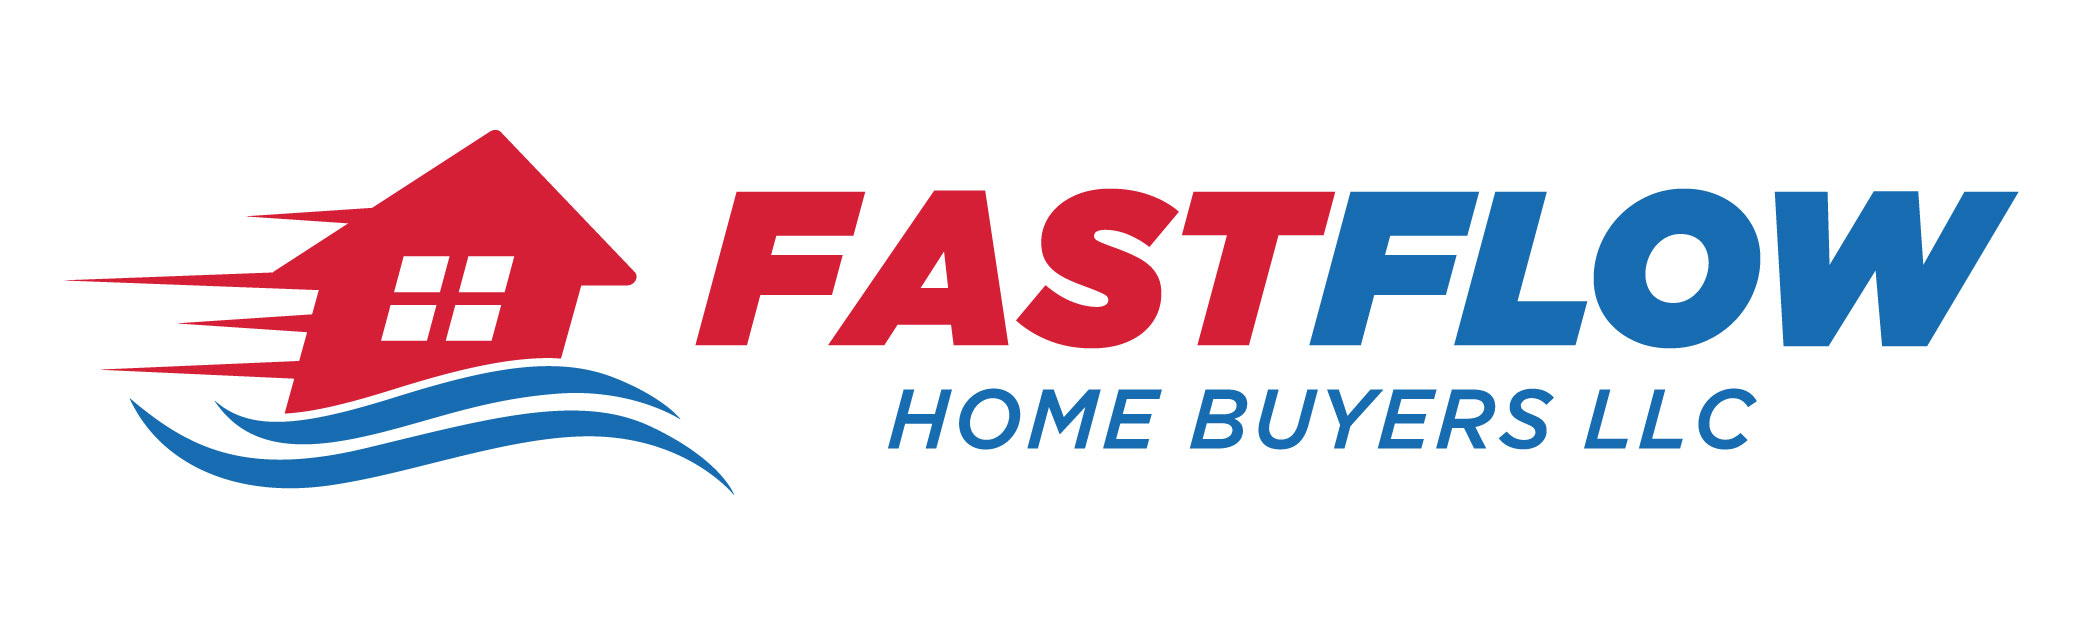 FastFlow Home Buyers LLC Expands To Multiple U.S. Cities